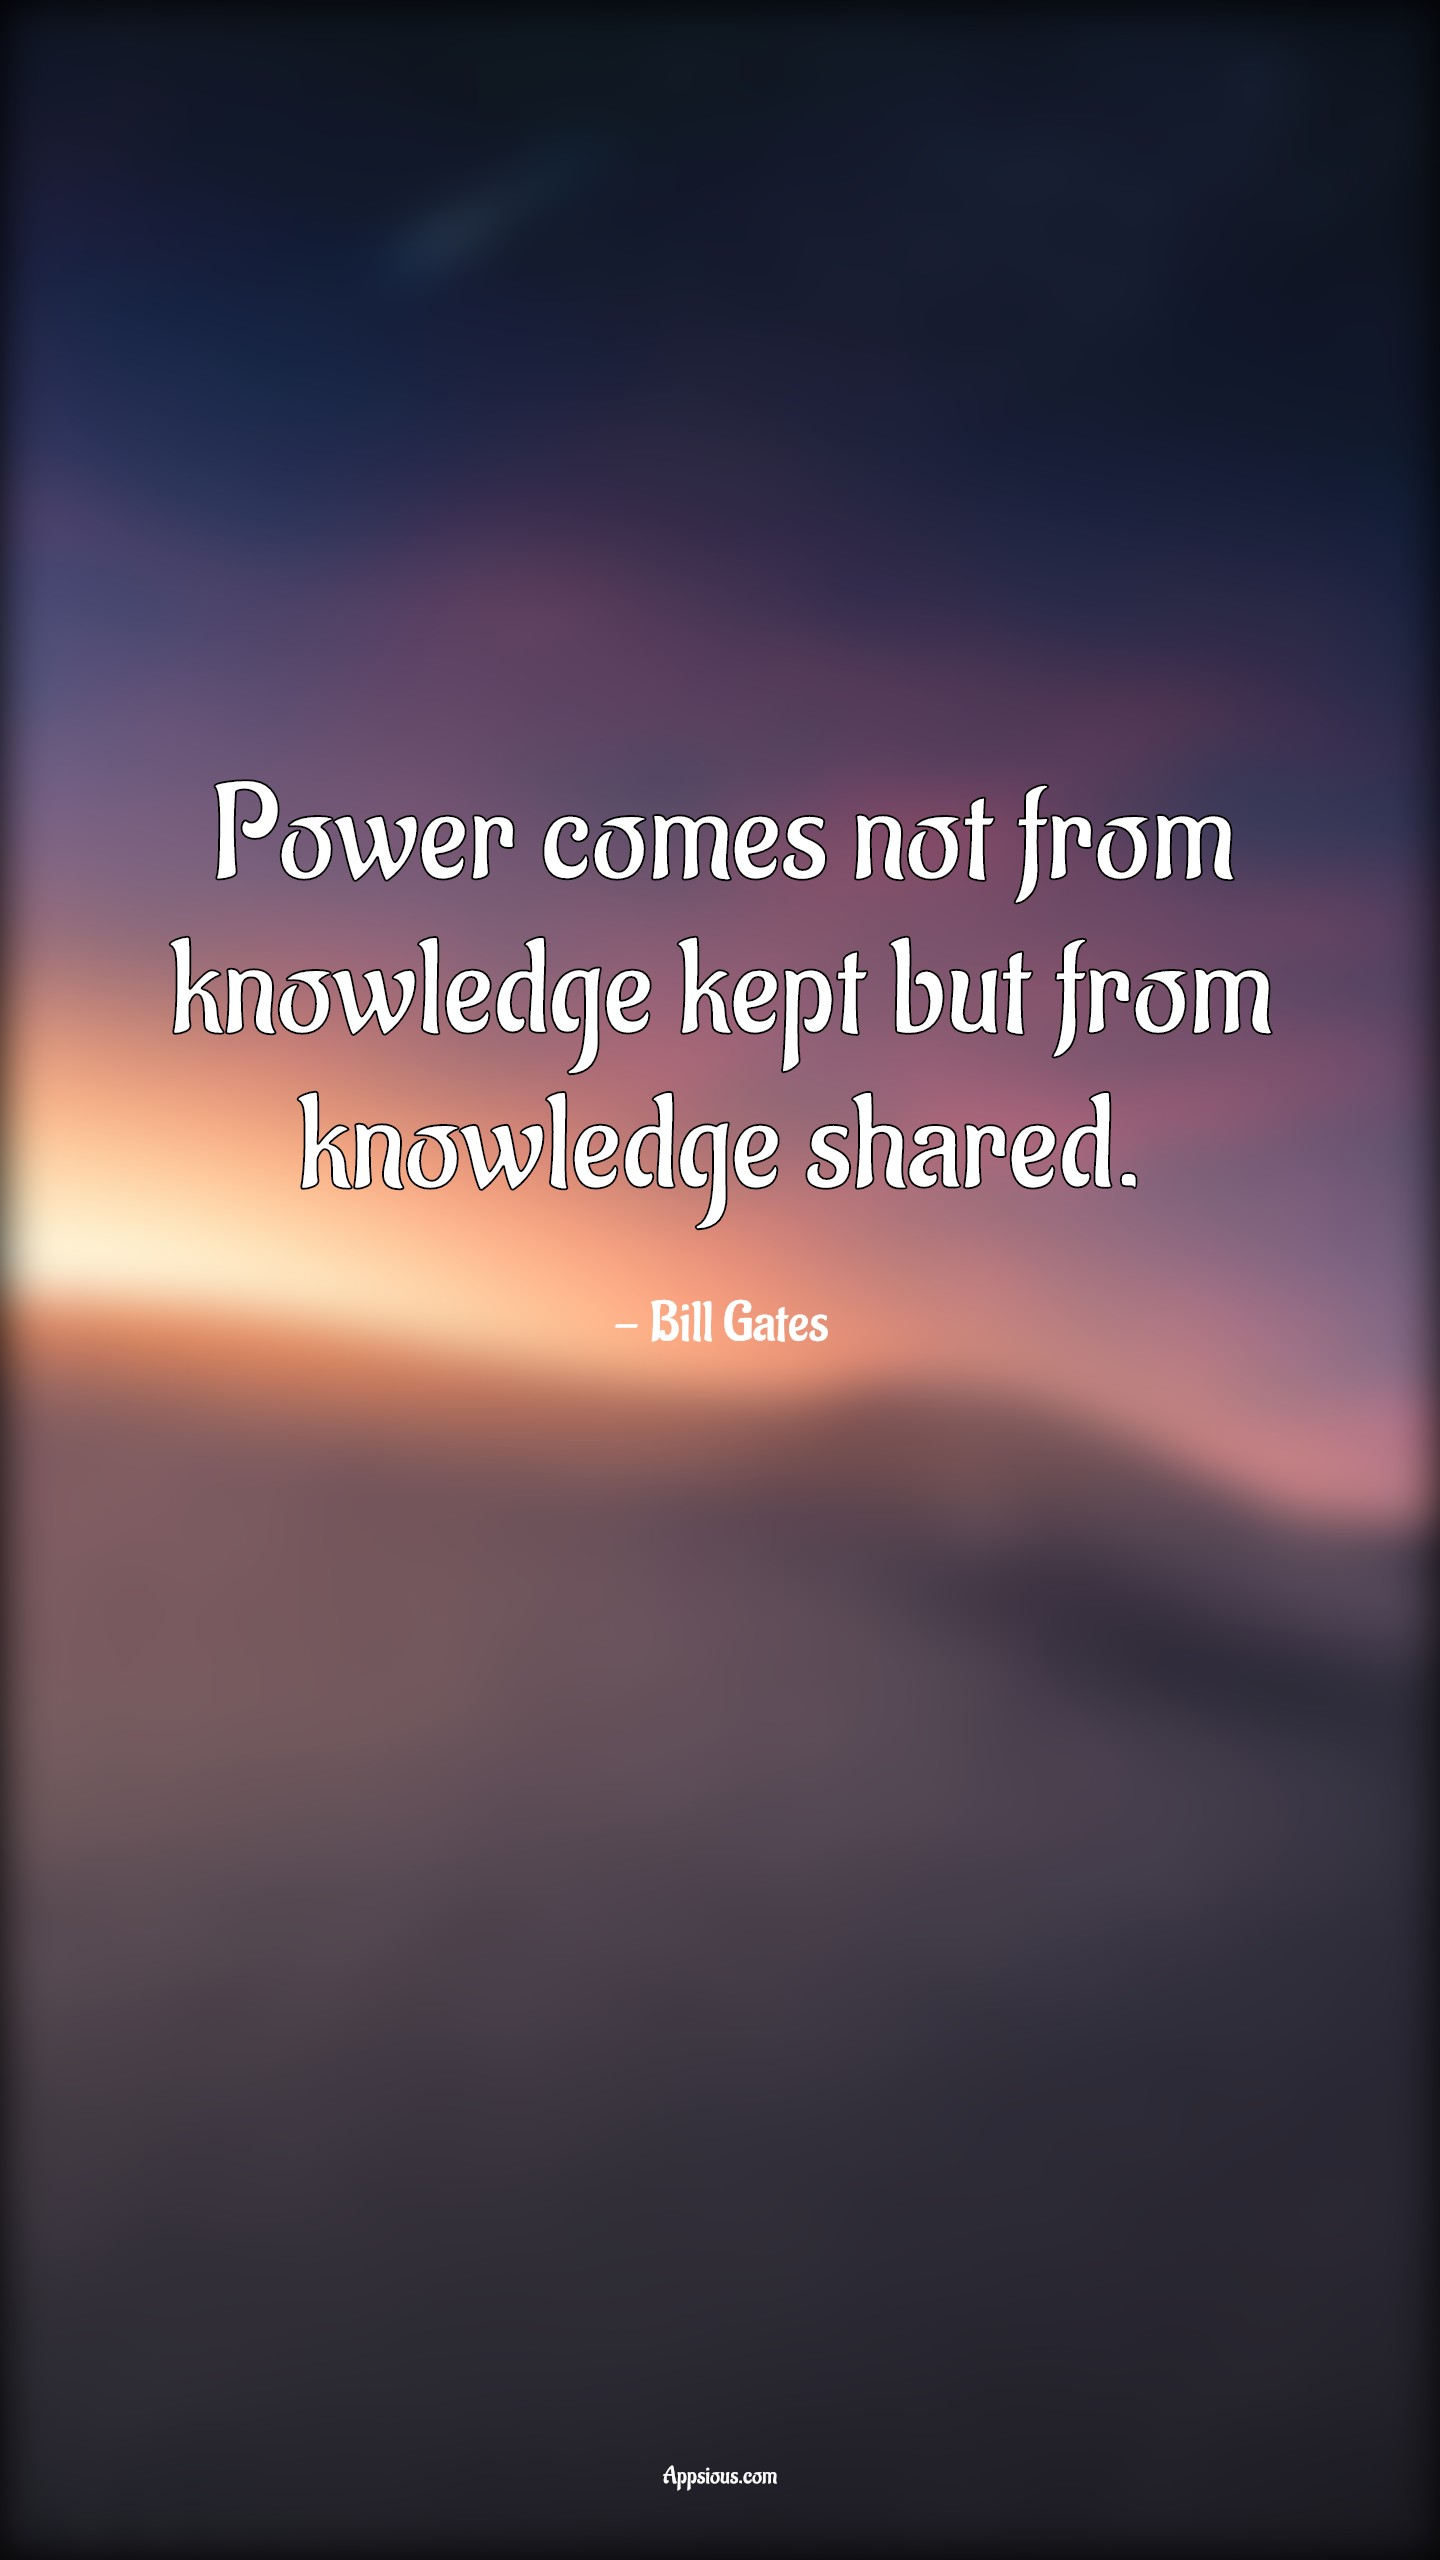 Power comes not from knowledge kept but from knowledge shared.